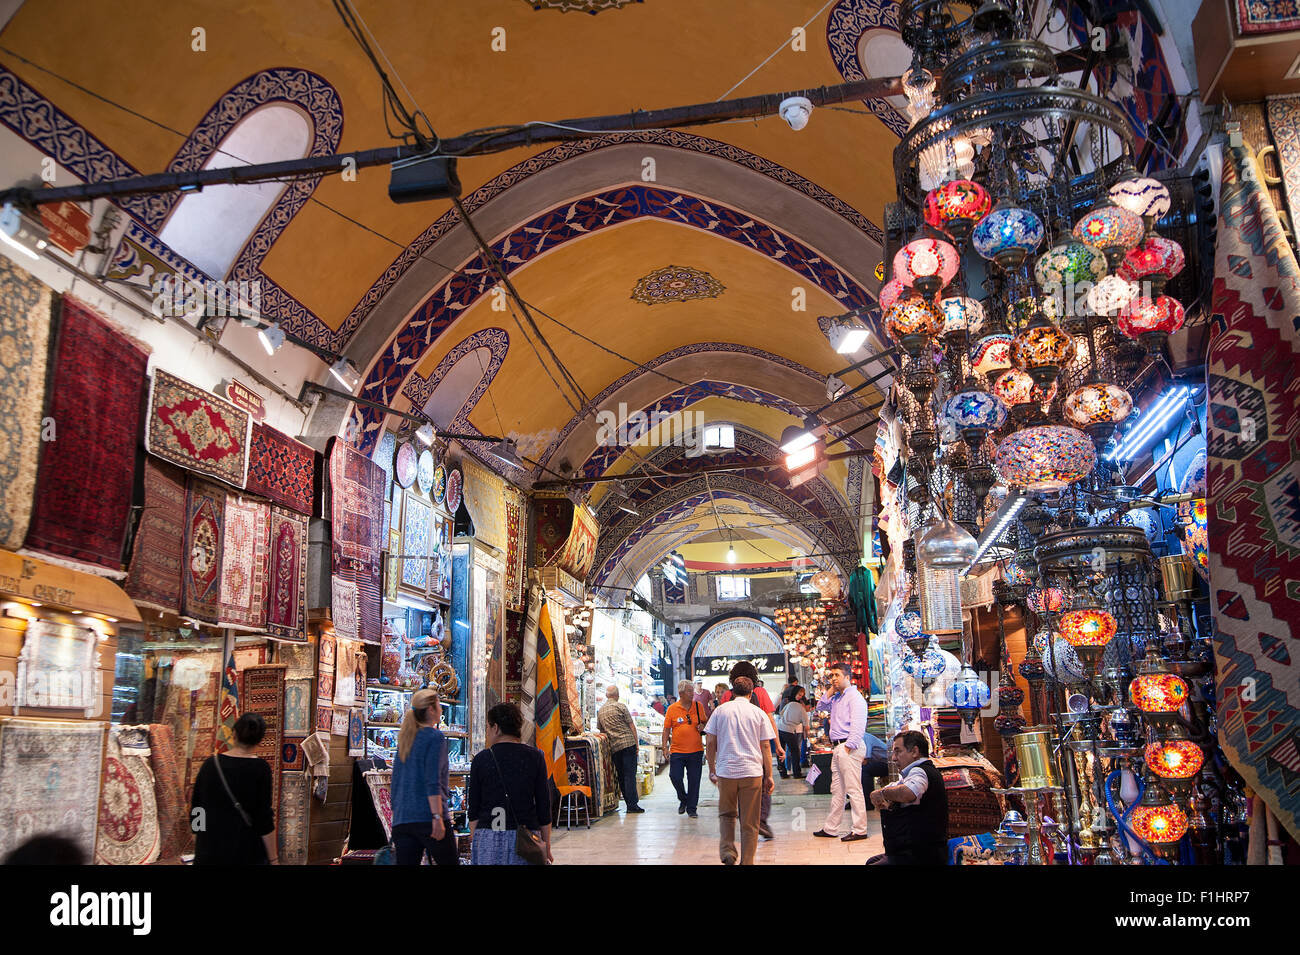 TURKEY, ISTANBUL: The Grand Bazaar (Kapalıçarşı) in Istanbul is one of the largest covered markets in the world - Stock Image